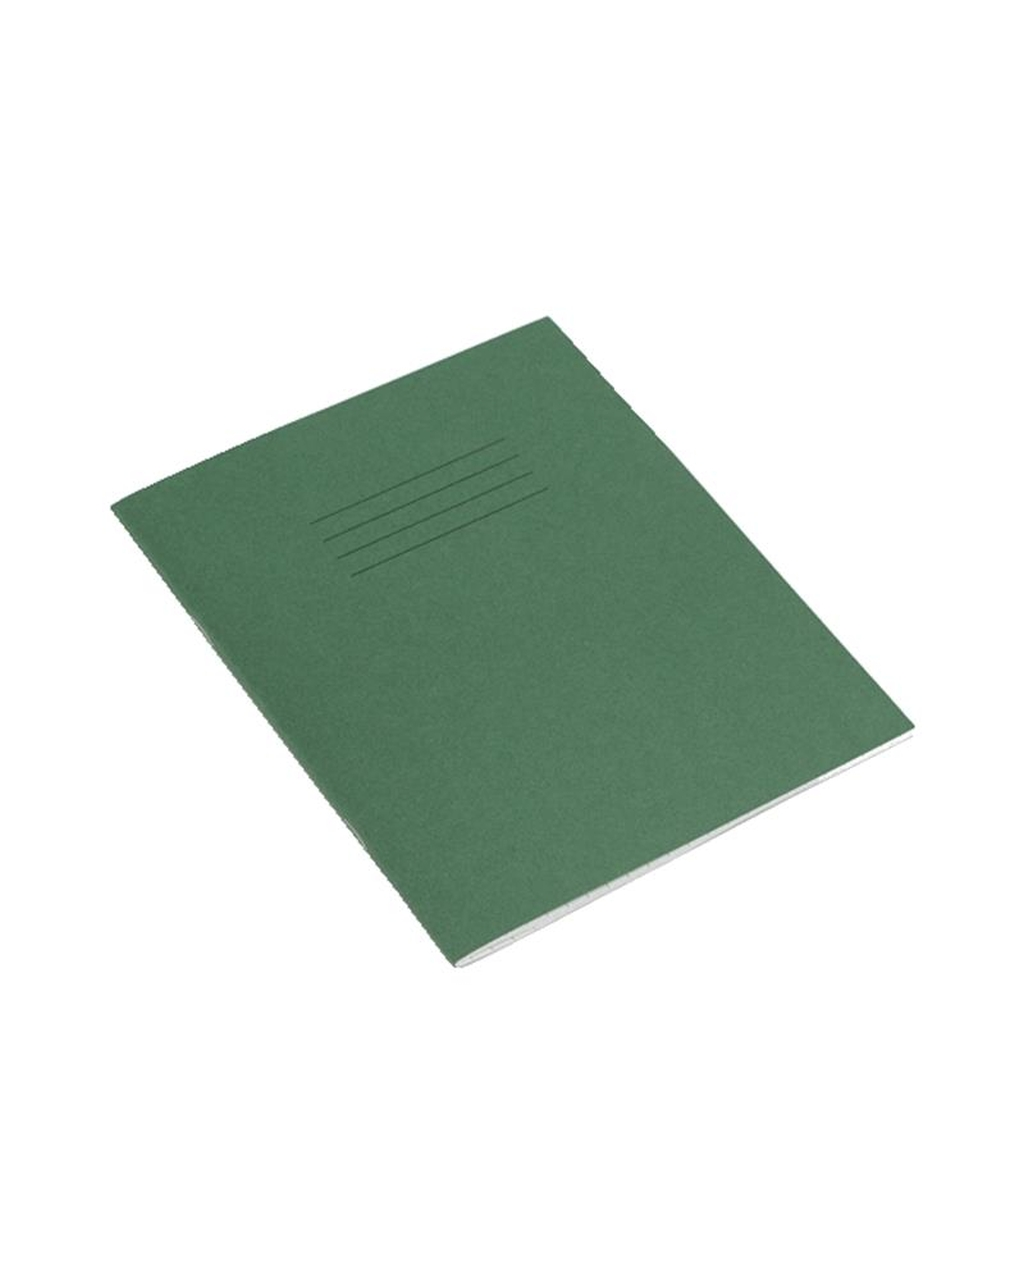 Exercise Book 8 x 6.5 (203 x 165mm) Dark Green Cover 4mm Blue Ruled Centred,16mm Red Ruled 32 Pages